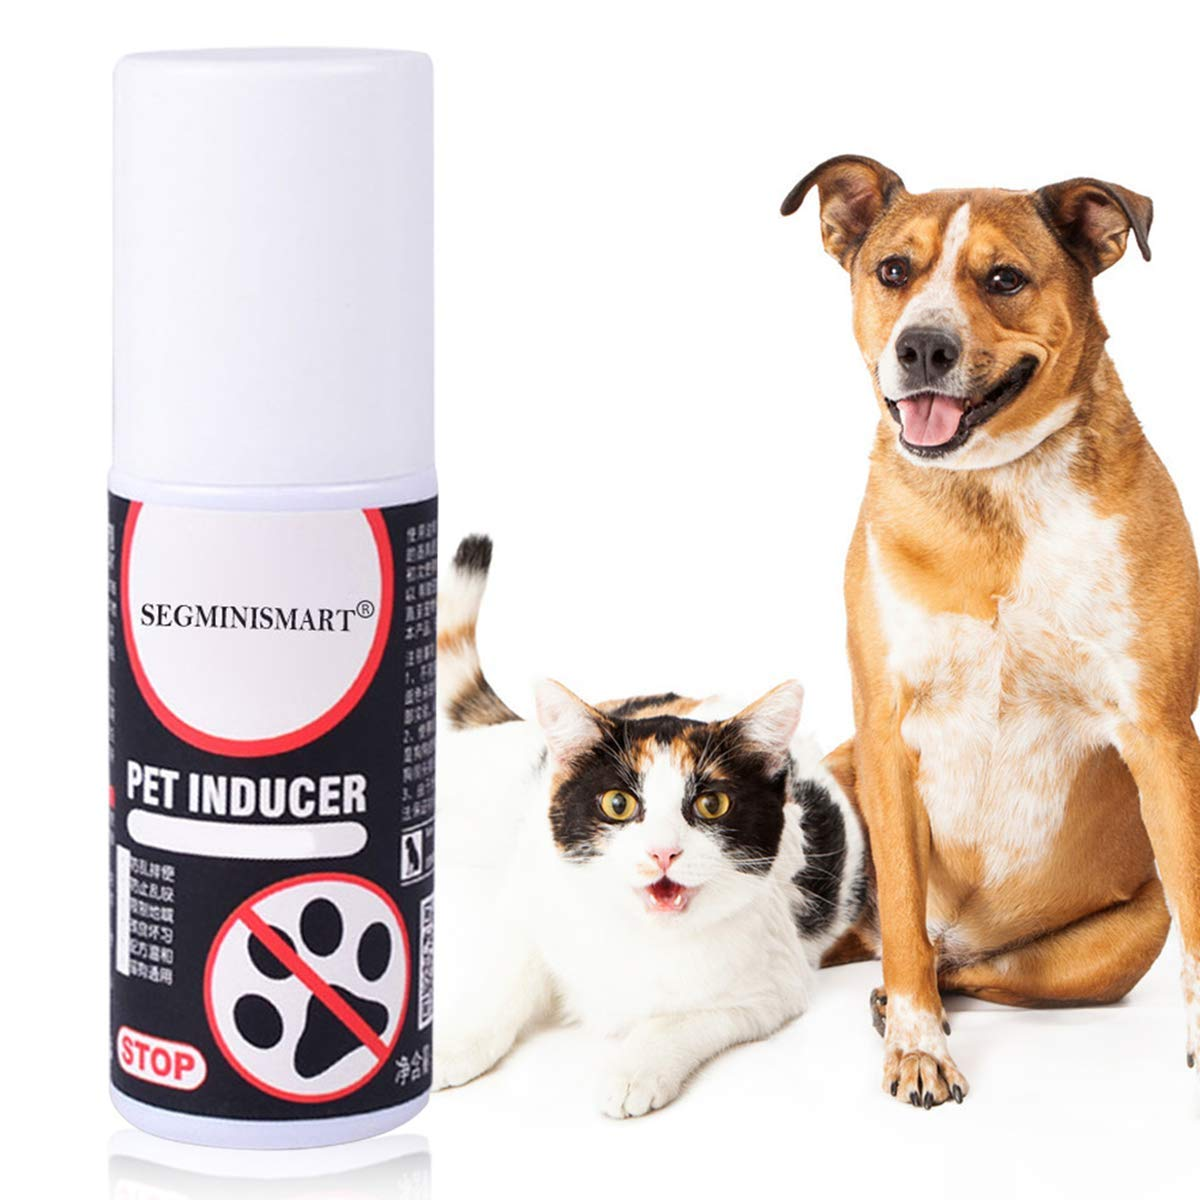 SEGMINISMART Cat Scratch Deterrent Spray, Cat Scratching Training Spray, Cat Training Spray, Suitable for Plants, Furniture, Floors and More with Rosemary Oil and Lemongrass, Protect Your Home by SEGMINISMART